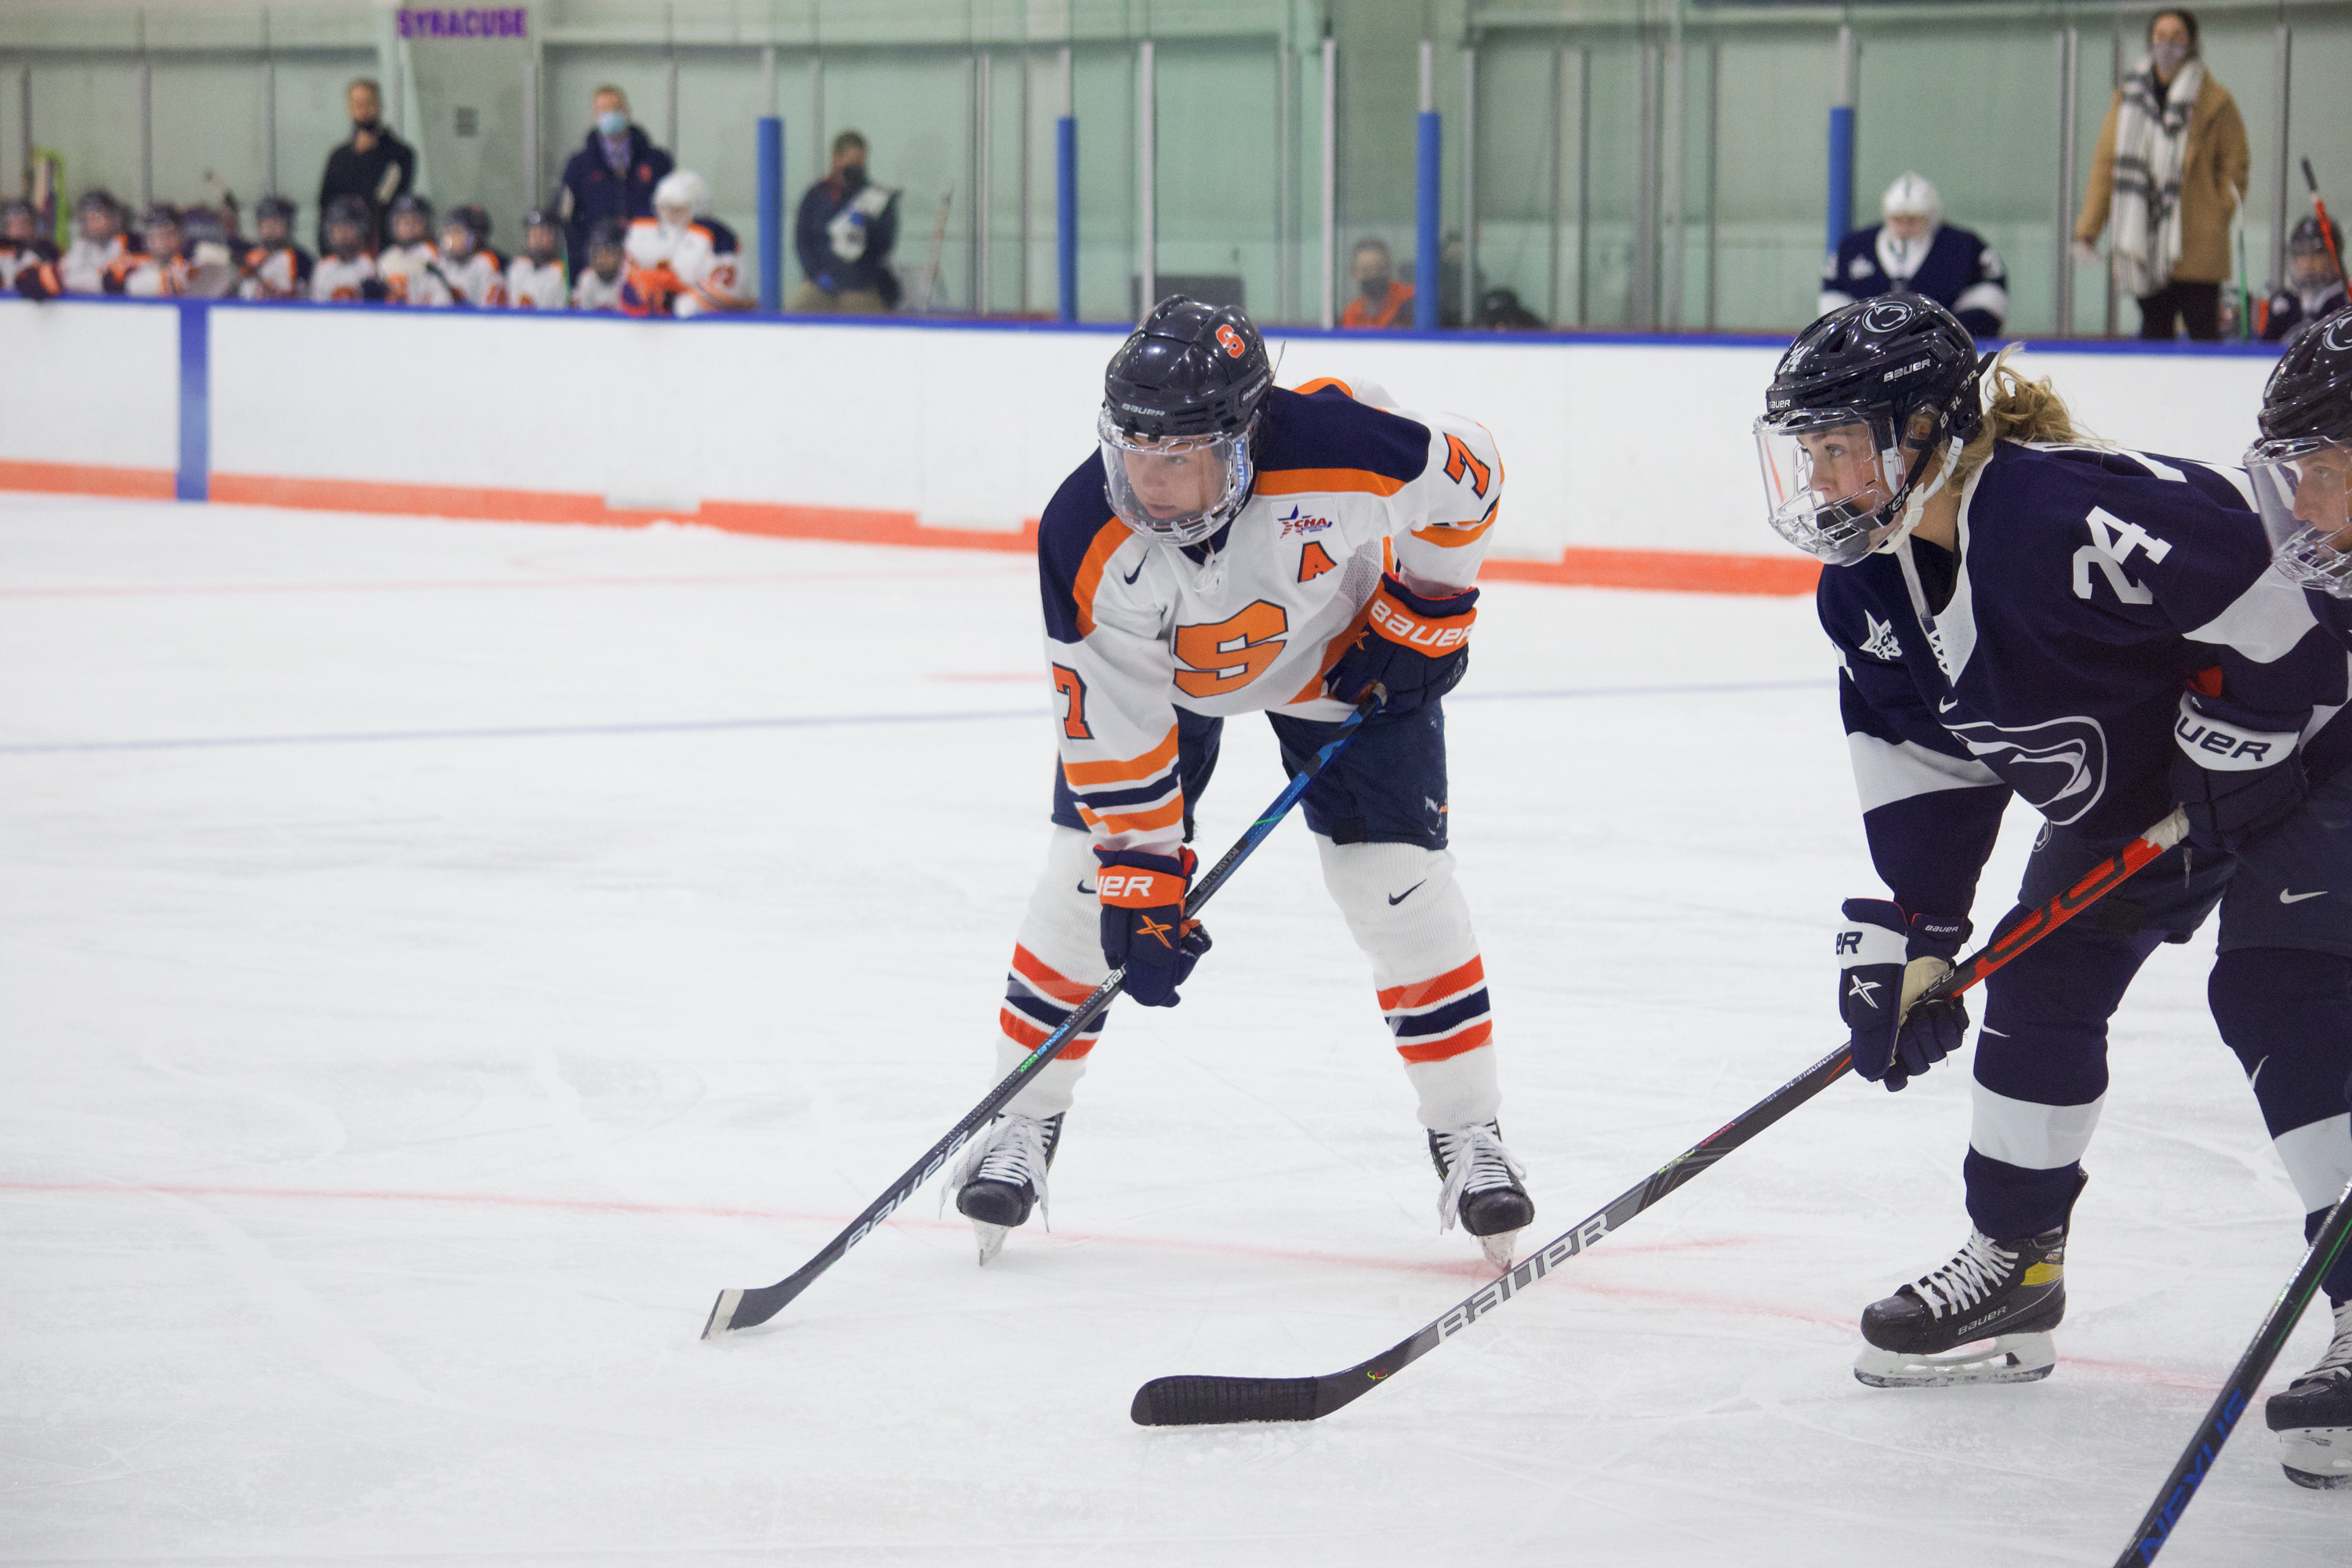 Syracuse senior assistant captain Emma Polaski lines up for an offensive zone face off during the Orange's game against Penn State on Dec. 12, 2020.